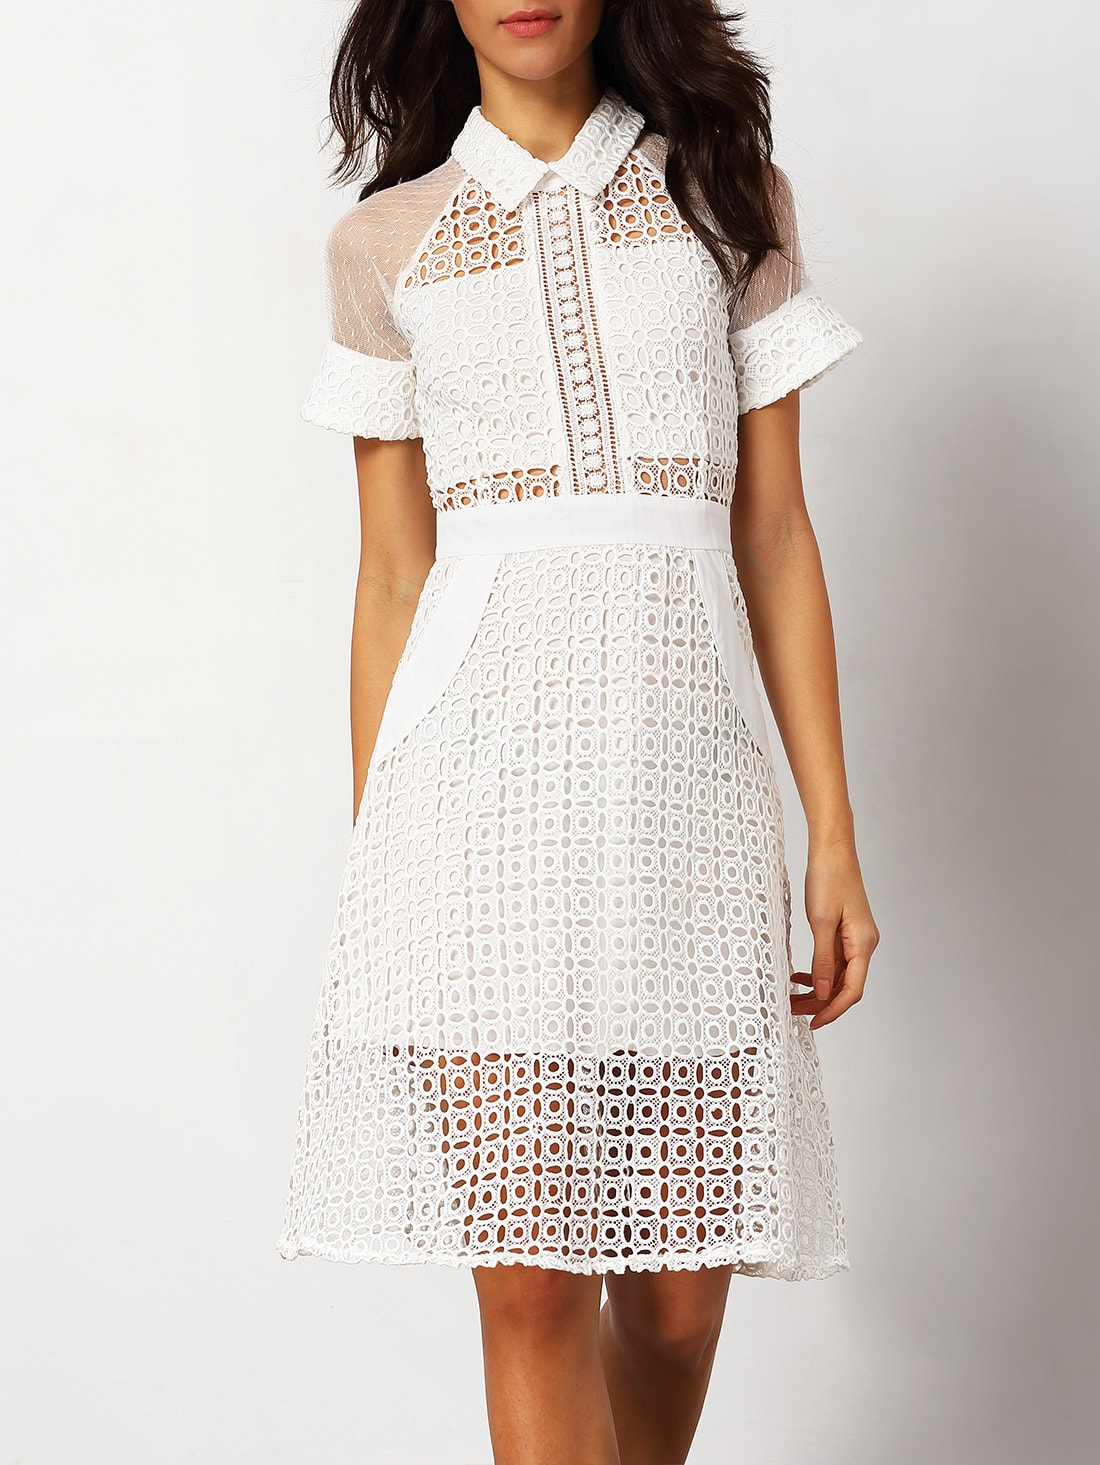 White Short Sleeve Hollow Sheer Dress -SheIn(Sheinside)